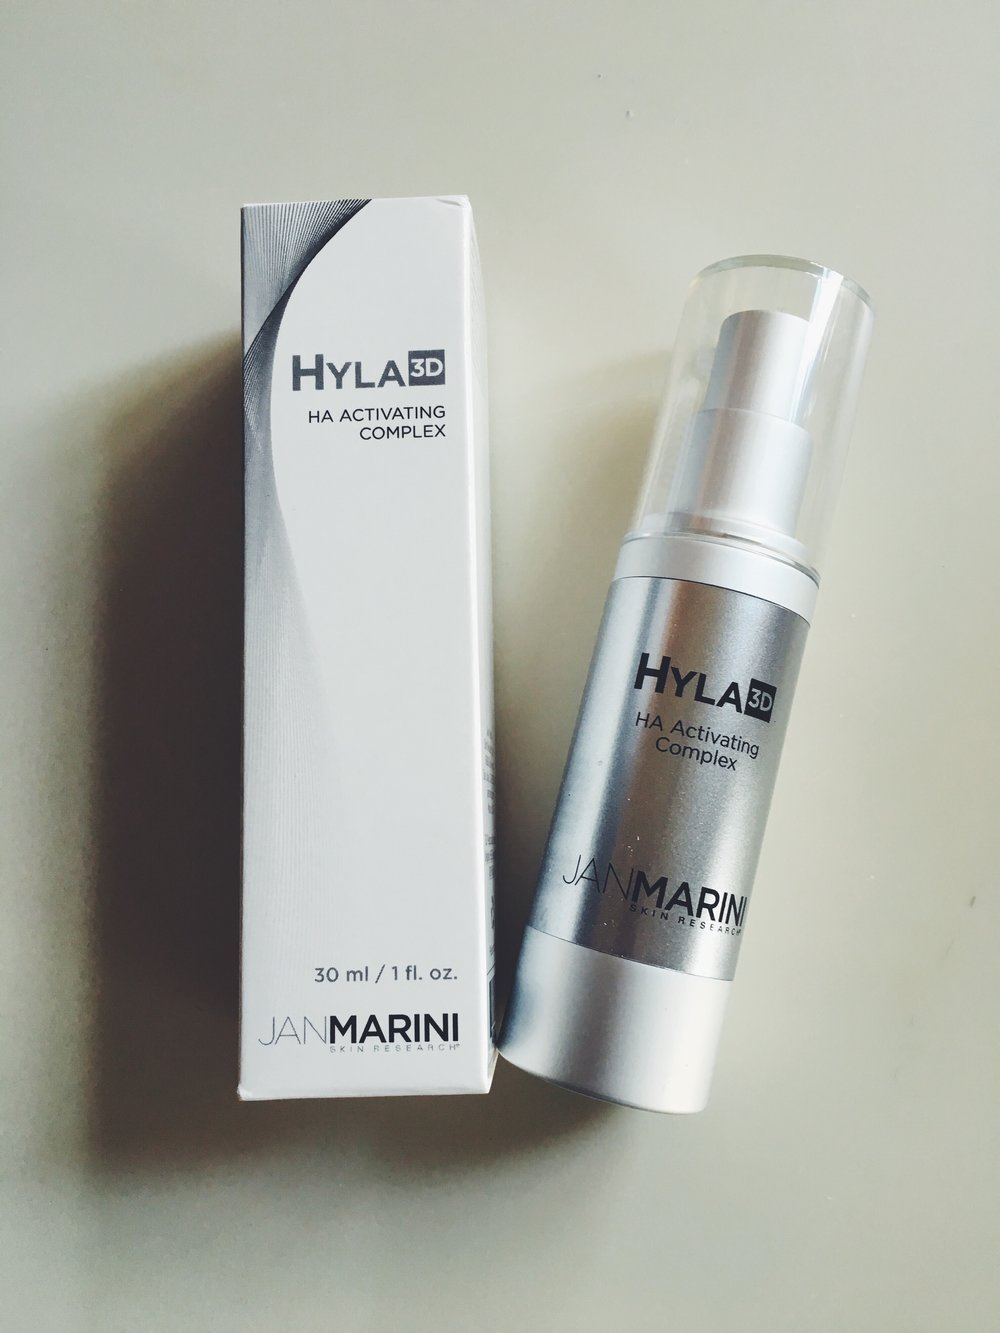 This product feels so amazing after I cleanse my face in the morning! The Hyaluronic Acid immediately plumps up and awakens my sleepy skin making it primed and ready for my daily make up routine to look perfect. So excited to have this as a part of my morning skincare ritual!